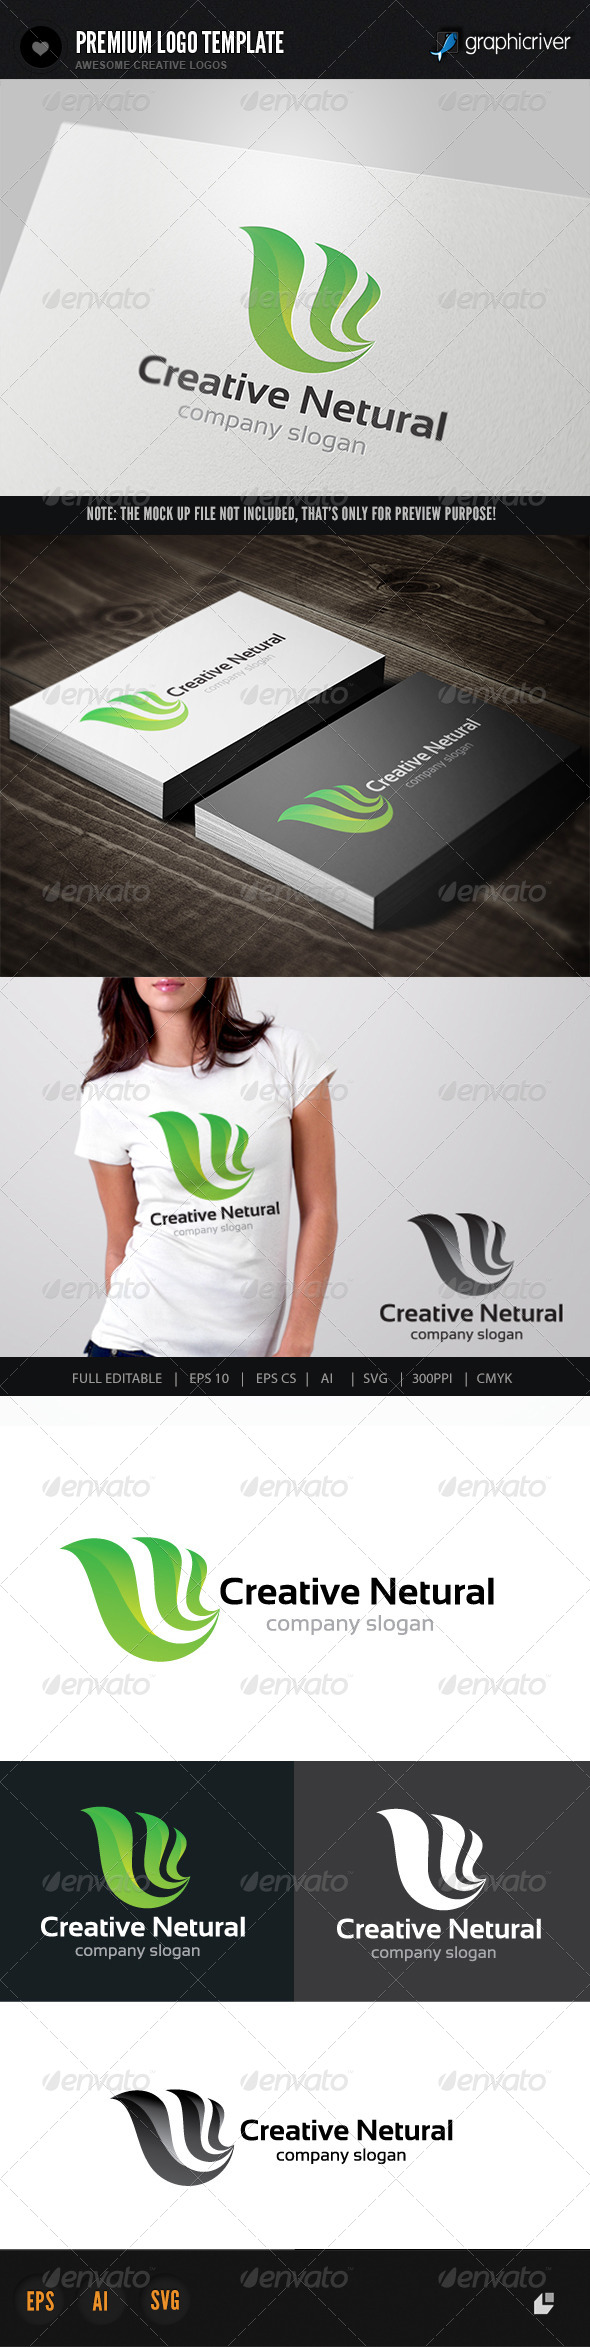 GraphicRiver Creative Netural 6164261